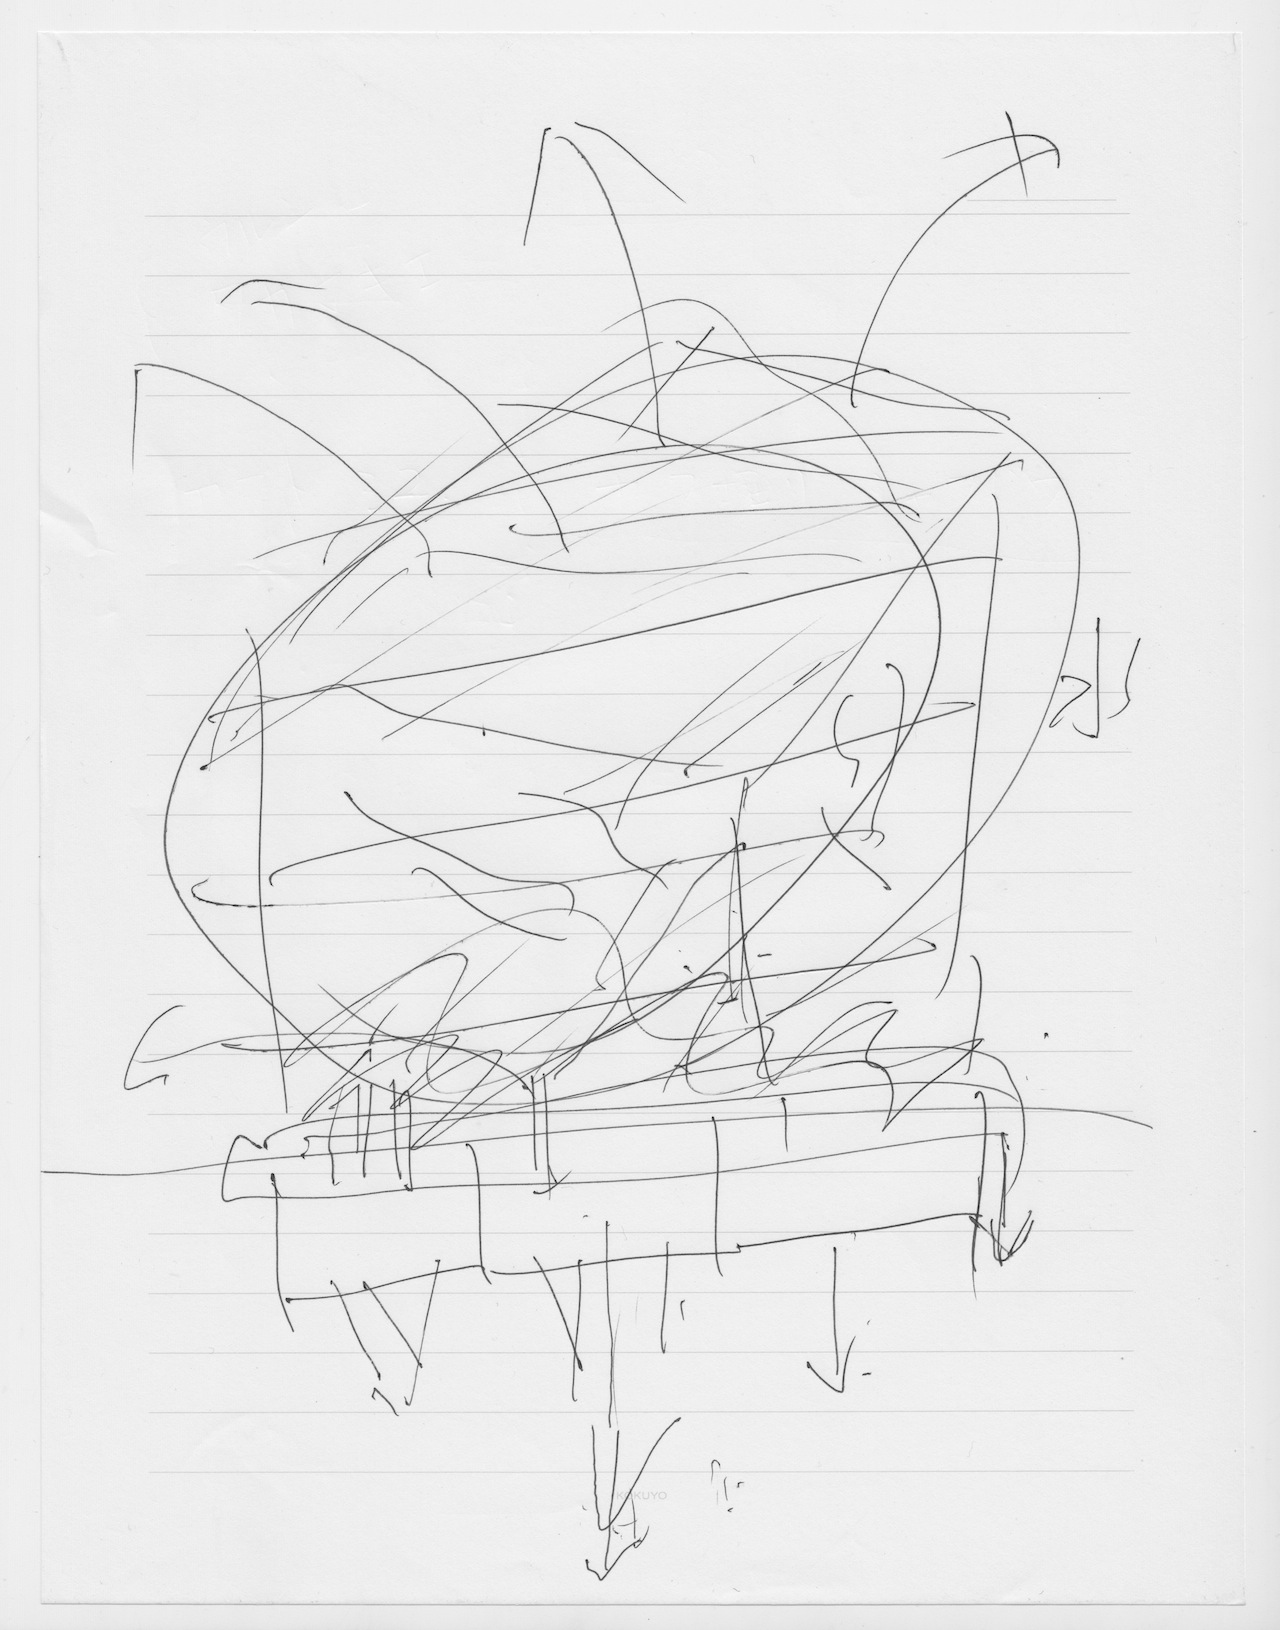 Drawing by a former resident affected by Fukushima nuclear disaster (click to enlarge)